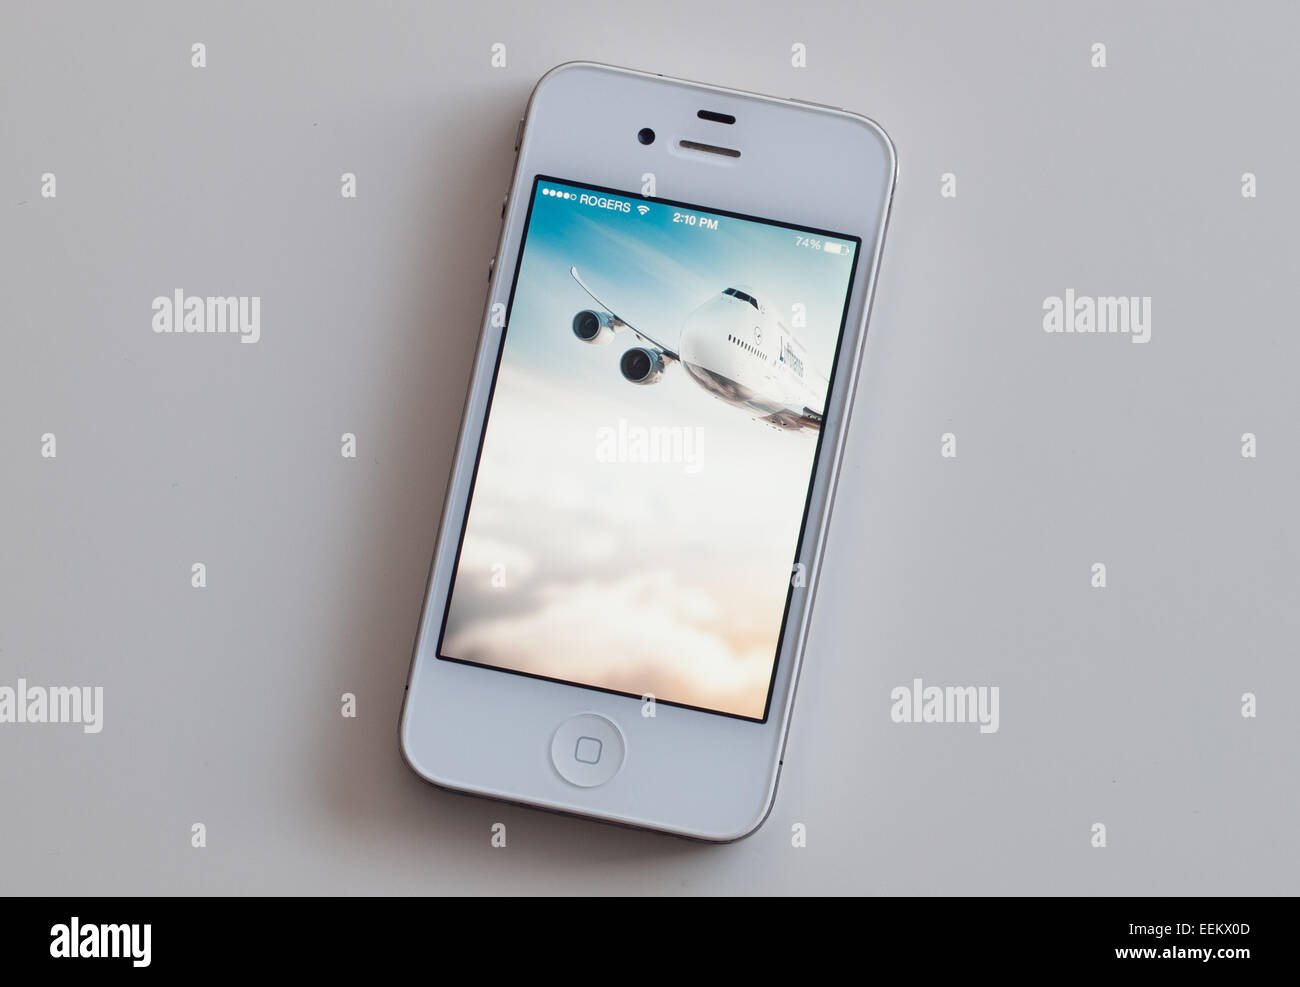 A view of the homescreen of the Lufthansa mobile app on a white Apple iPhone 4. - Stock Image